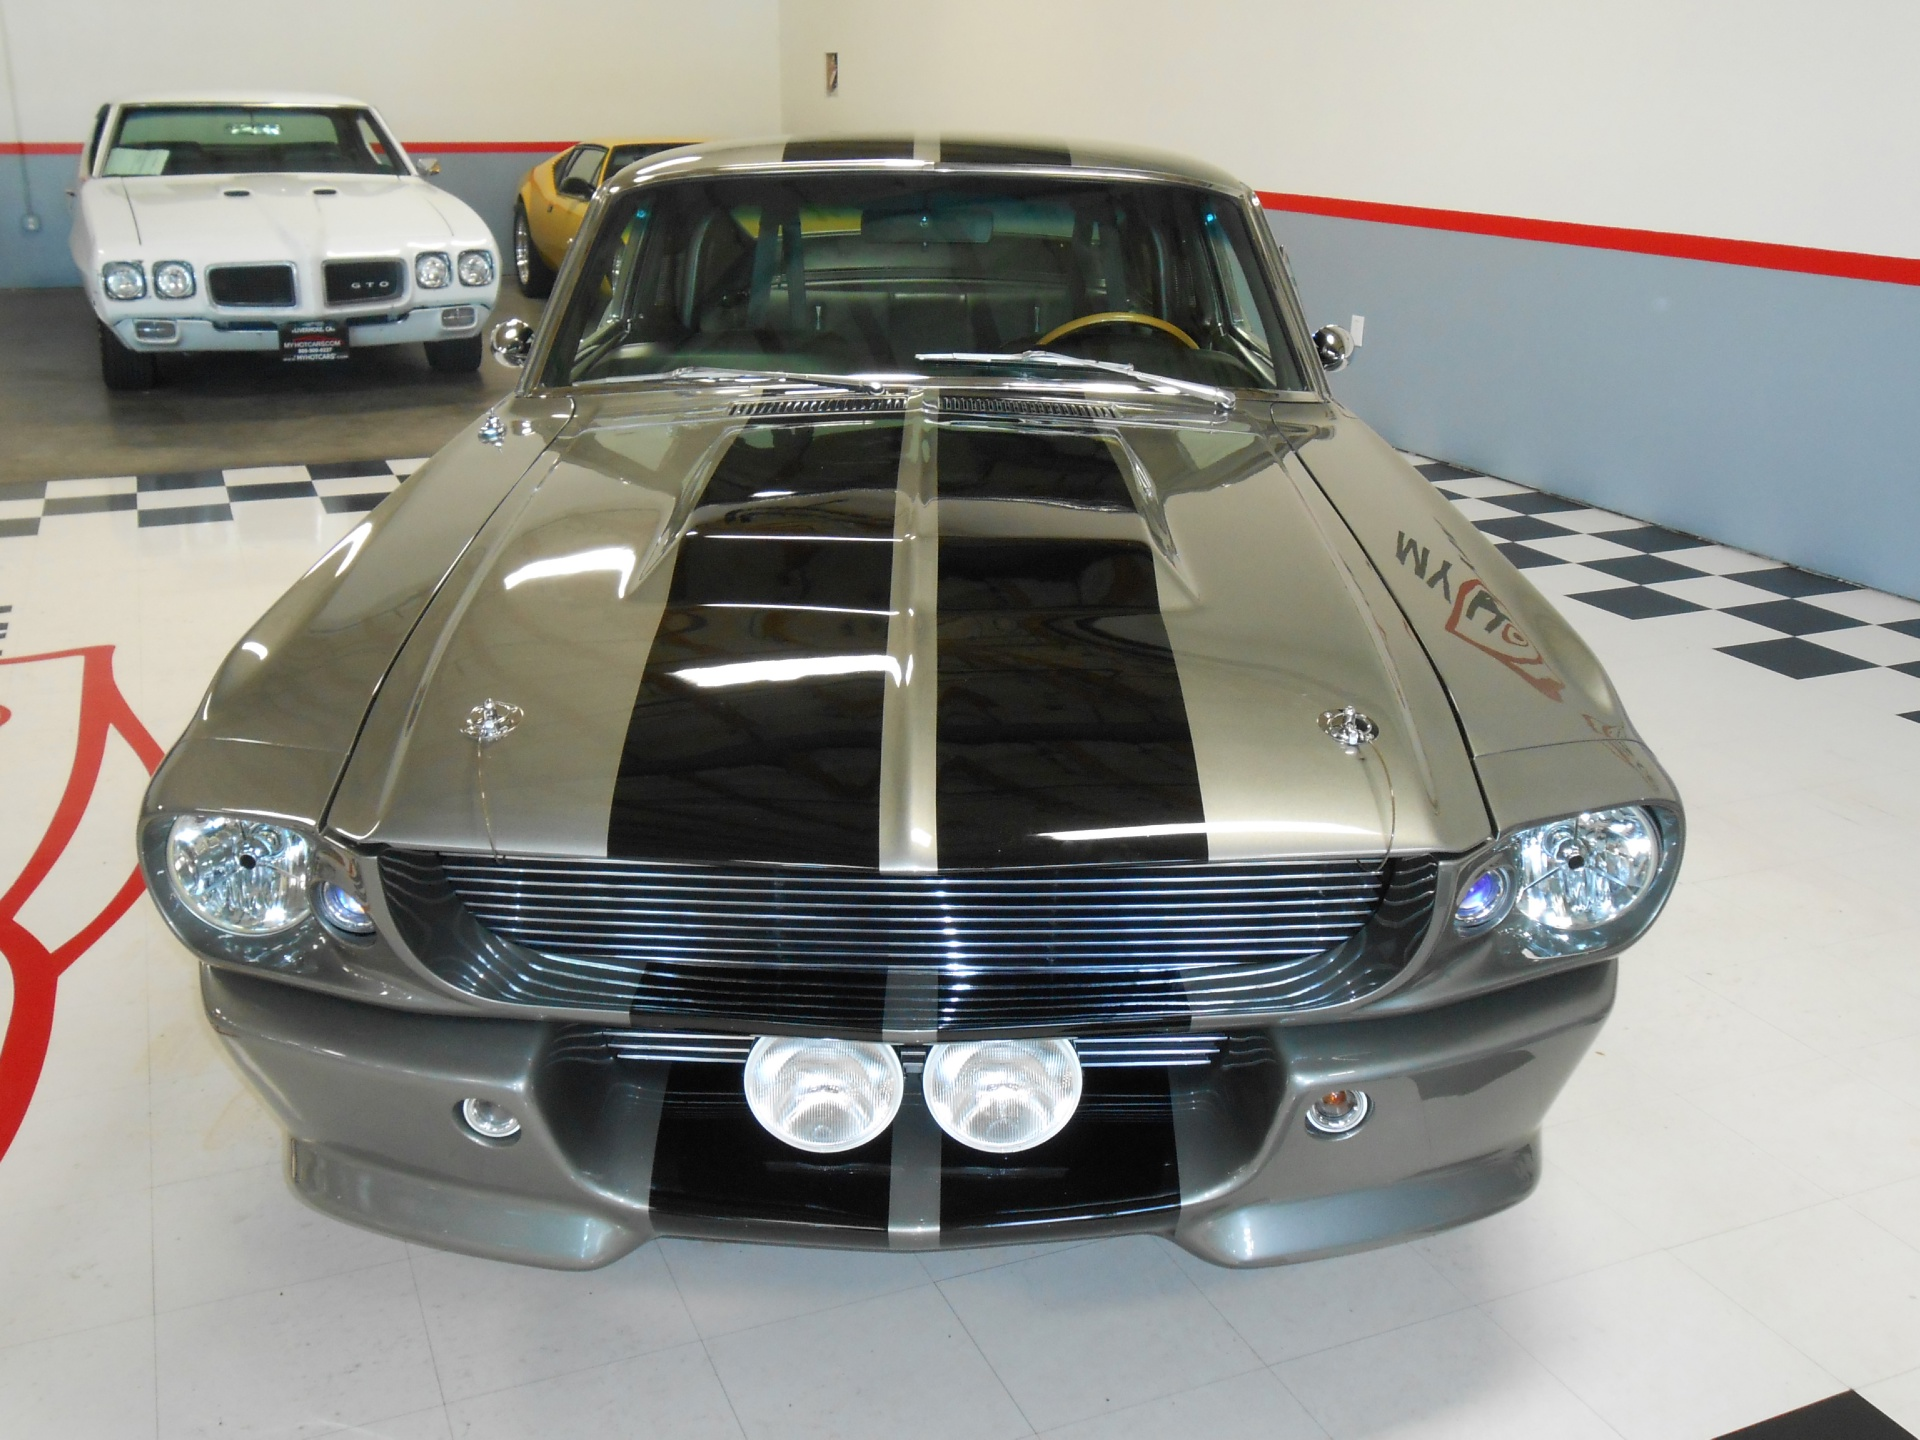 1967 Mustang Shelby Gt500 Eleanor For Sale